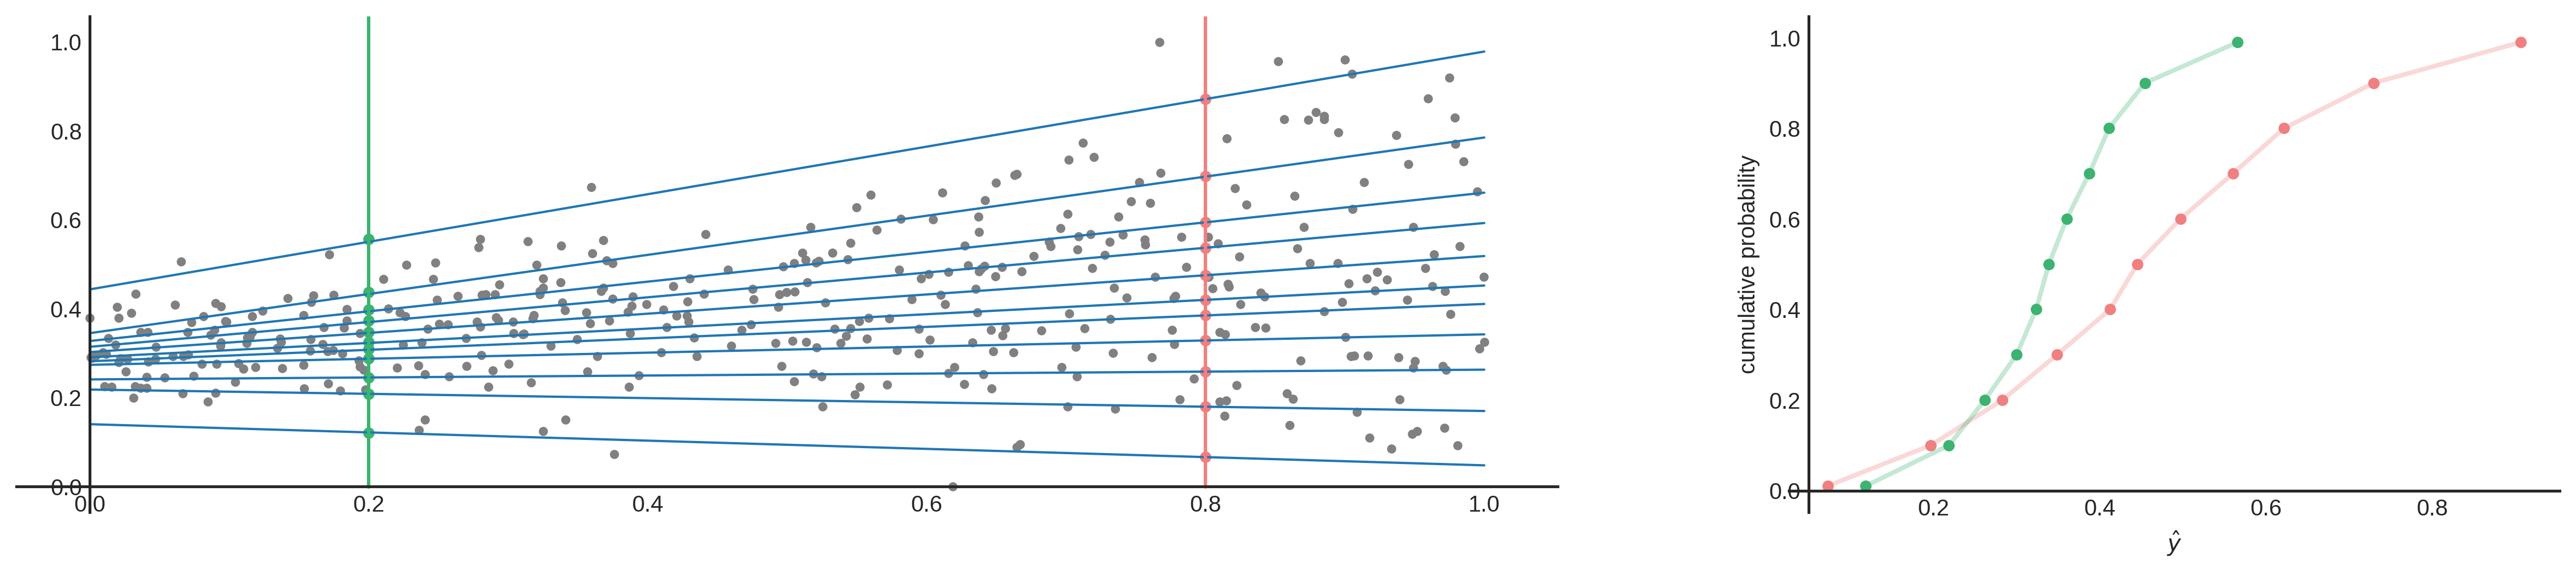 Figure 4: Visualization to show how multiple quantile regressions approximate a CDF.